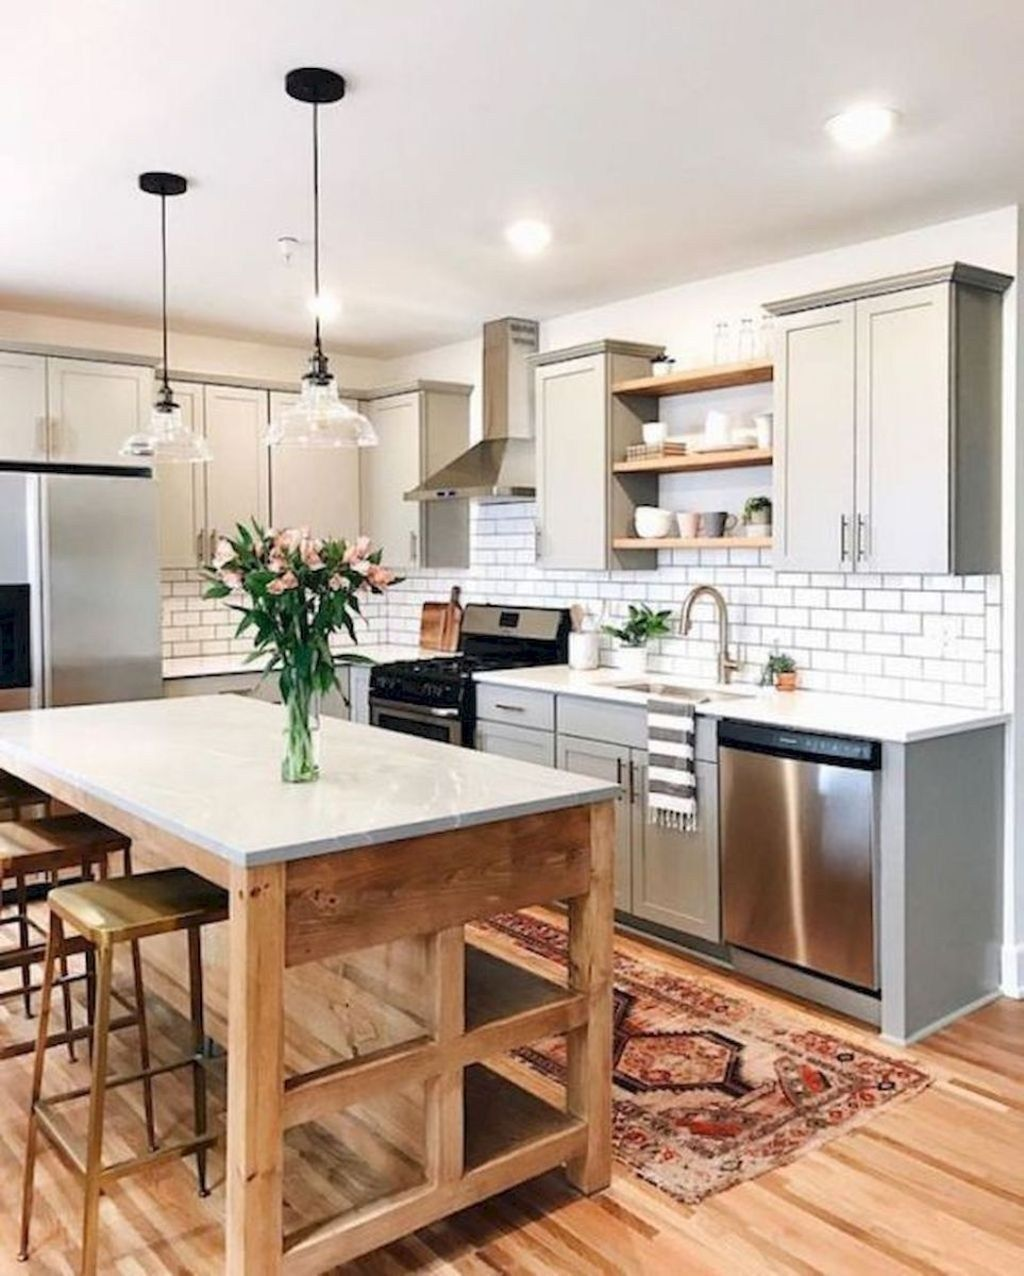 Perfect Farmhouse Kitchen Decorating Ideas For 2018 35 Home Decor Kitchen Farmhouse Kitchen Design Kitchen Remodel Small